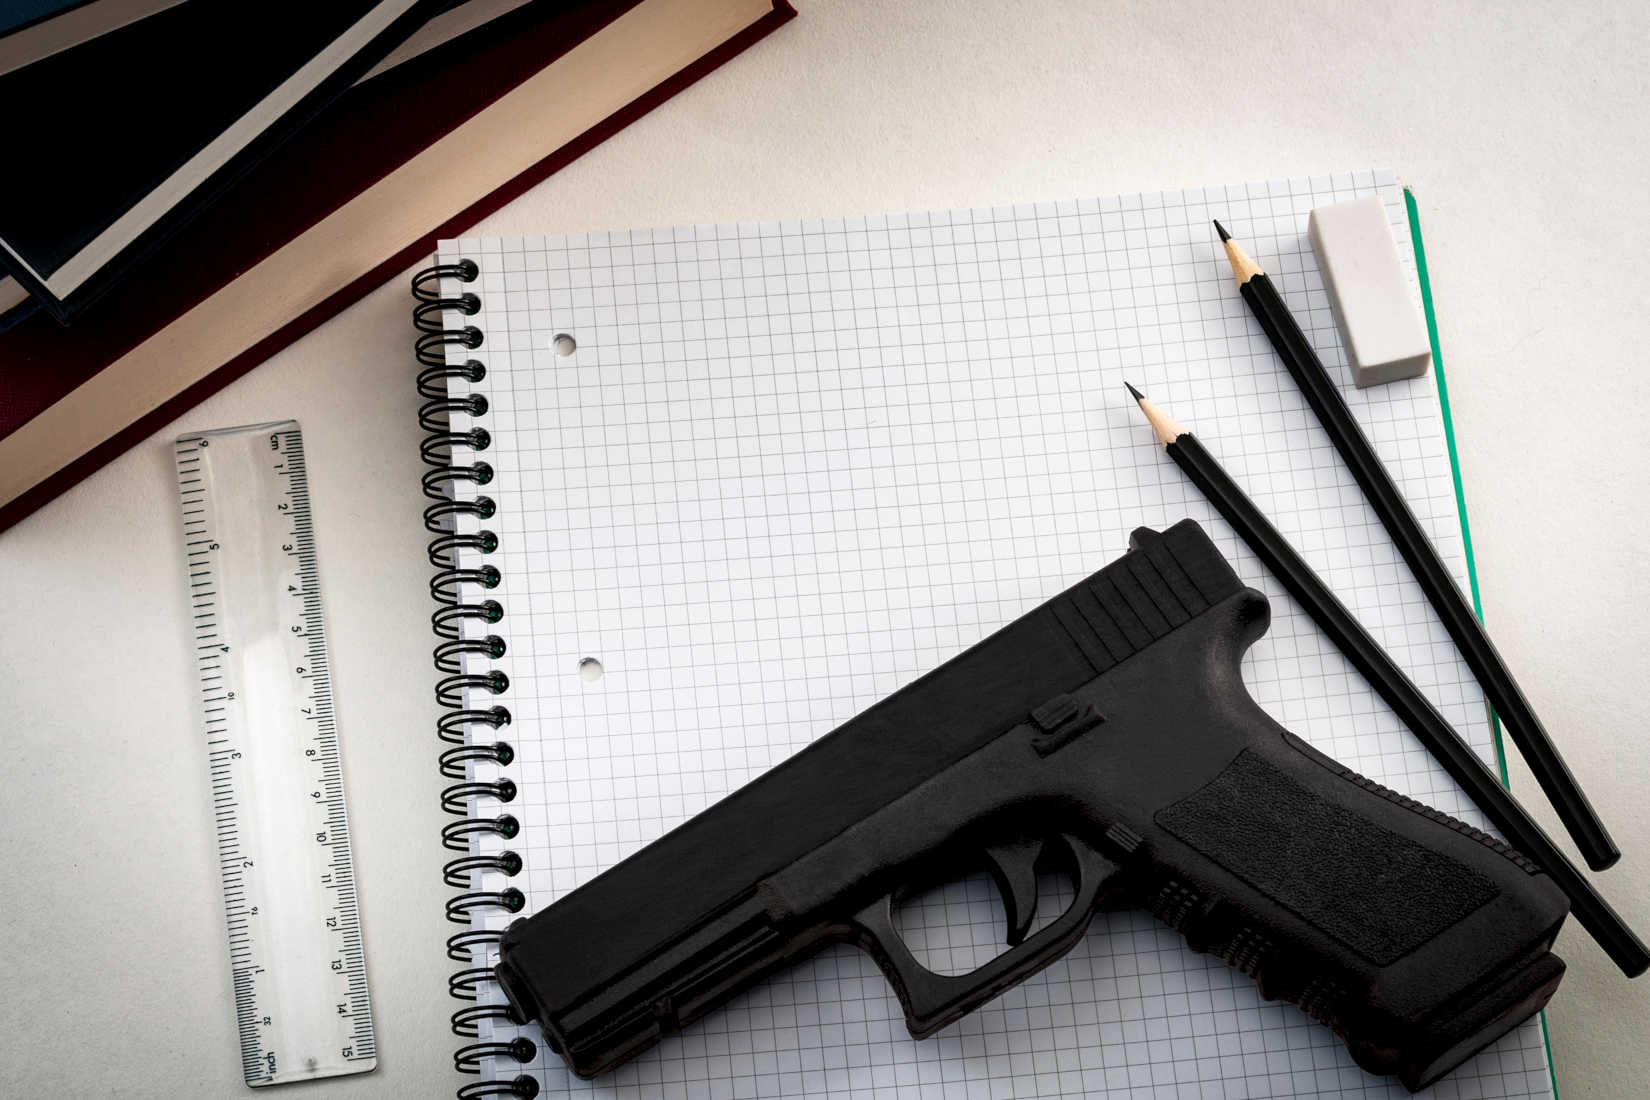 Charter School Asked to Leave District for Allowing Teachers to Carry Firearms